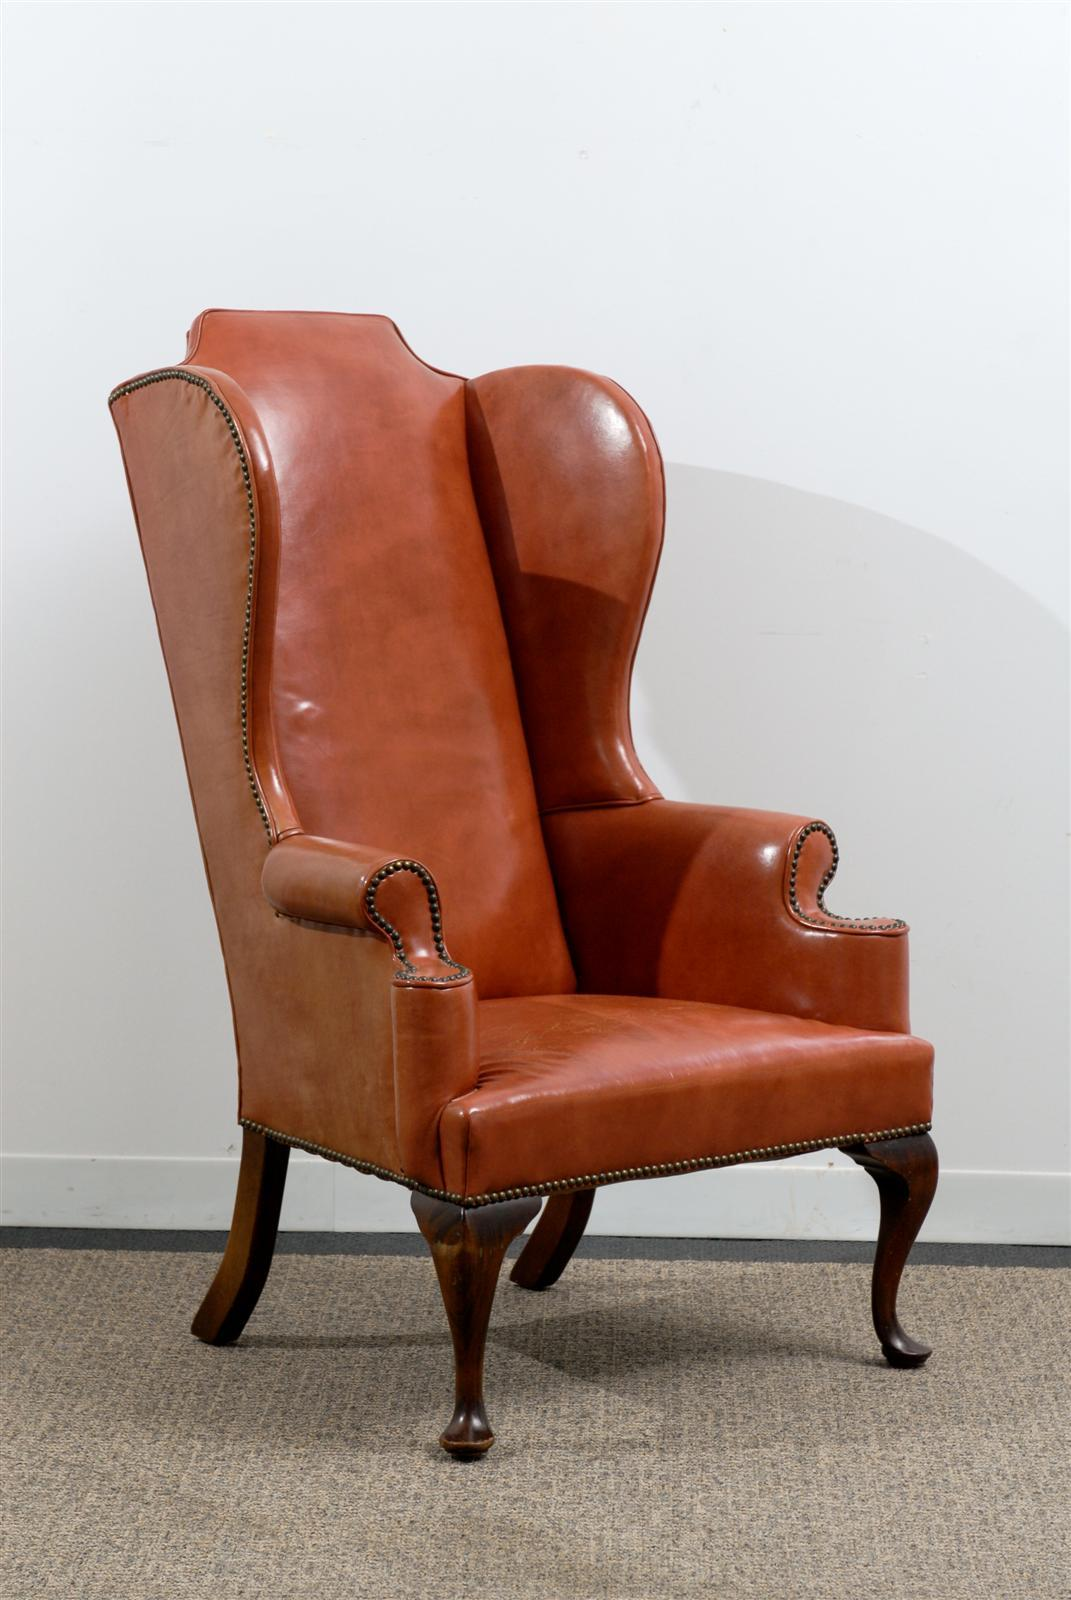 Orange Leather Chair Leather Queen Anne Style Wing Chair In Burnished Orange